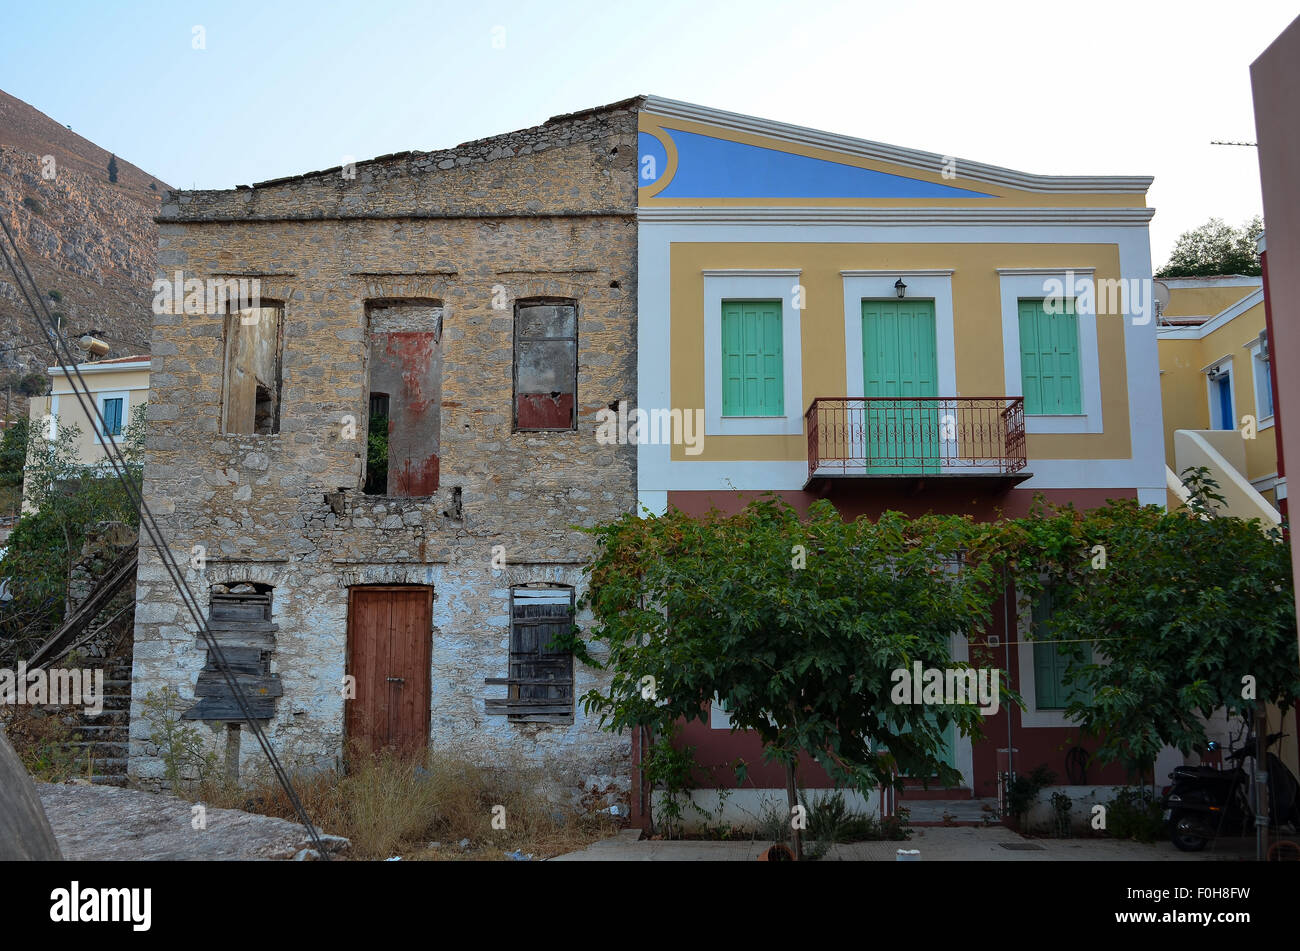 Buildings on the Greek island of Symi highlighting recent